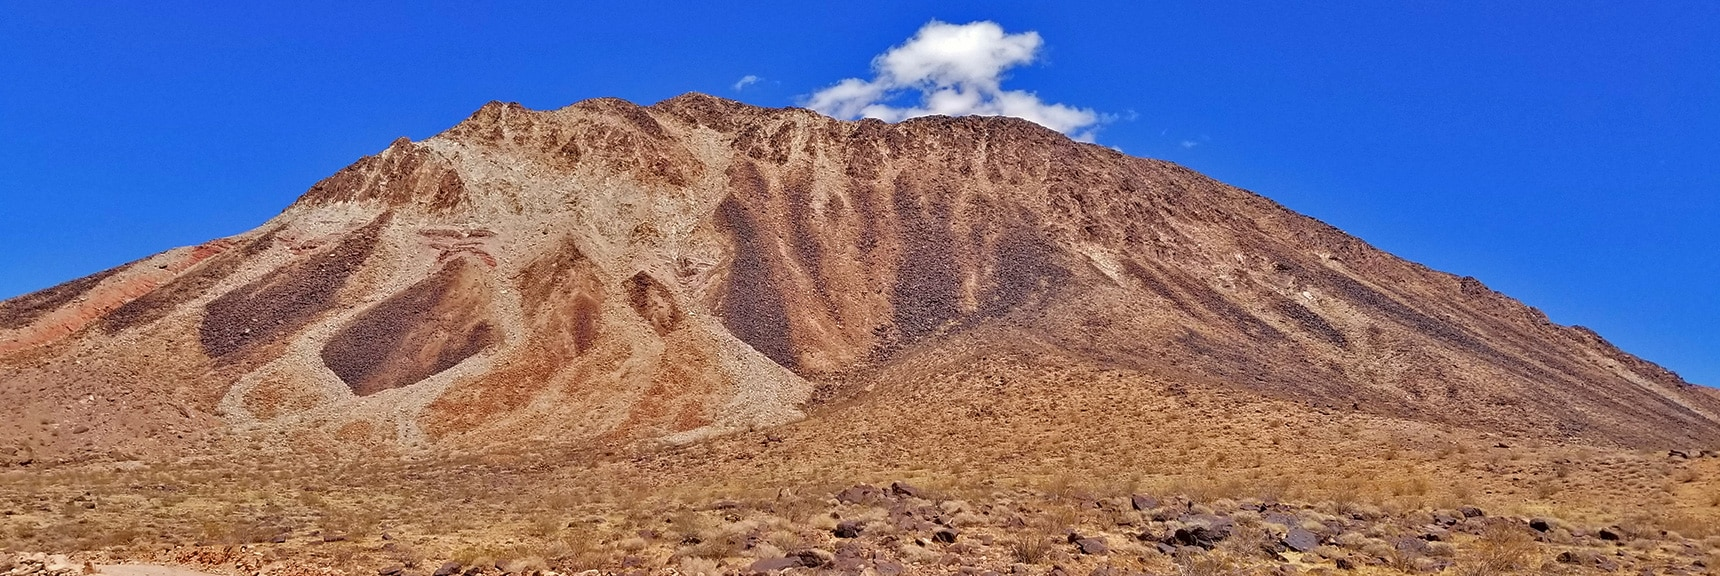 Western View of Lava Butte from Lava Butte Road | Lava Butte | Lake Mead National Recreation Area, Nevada